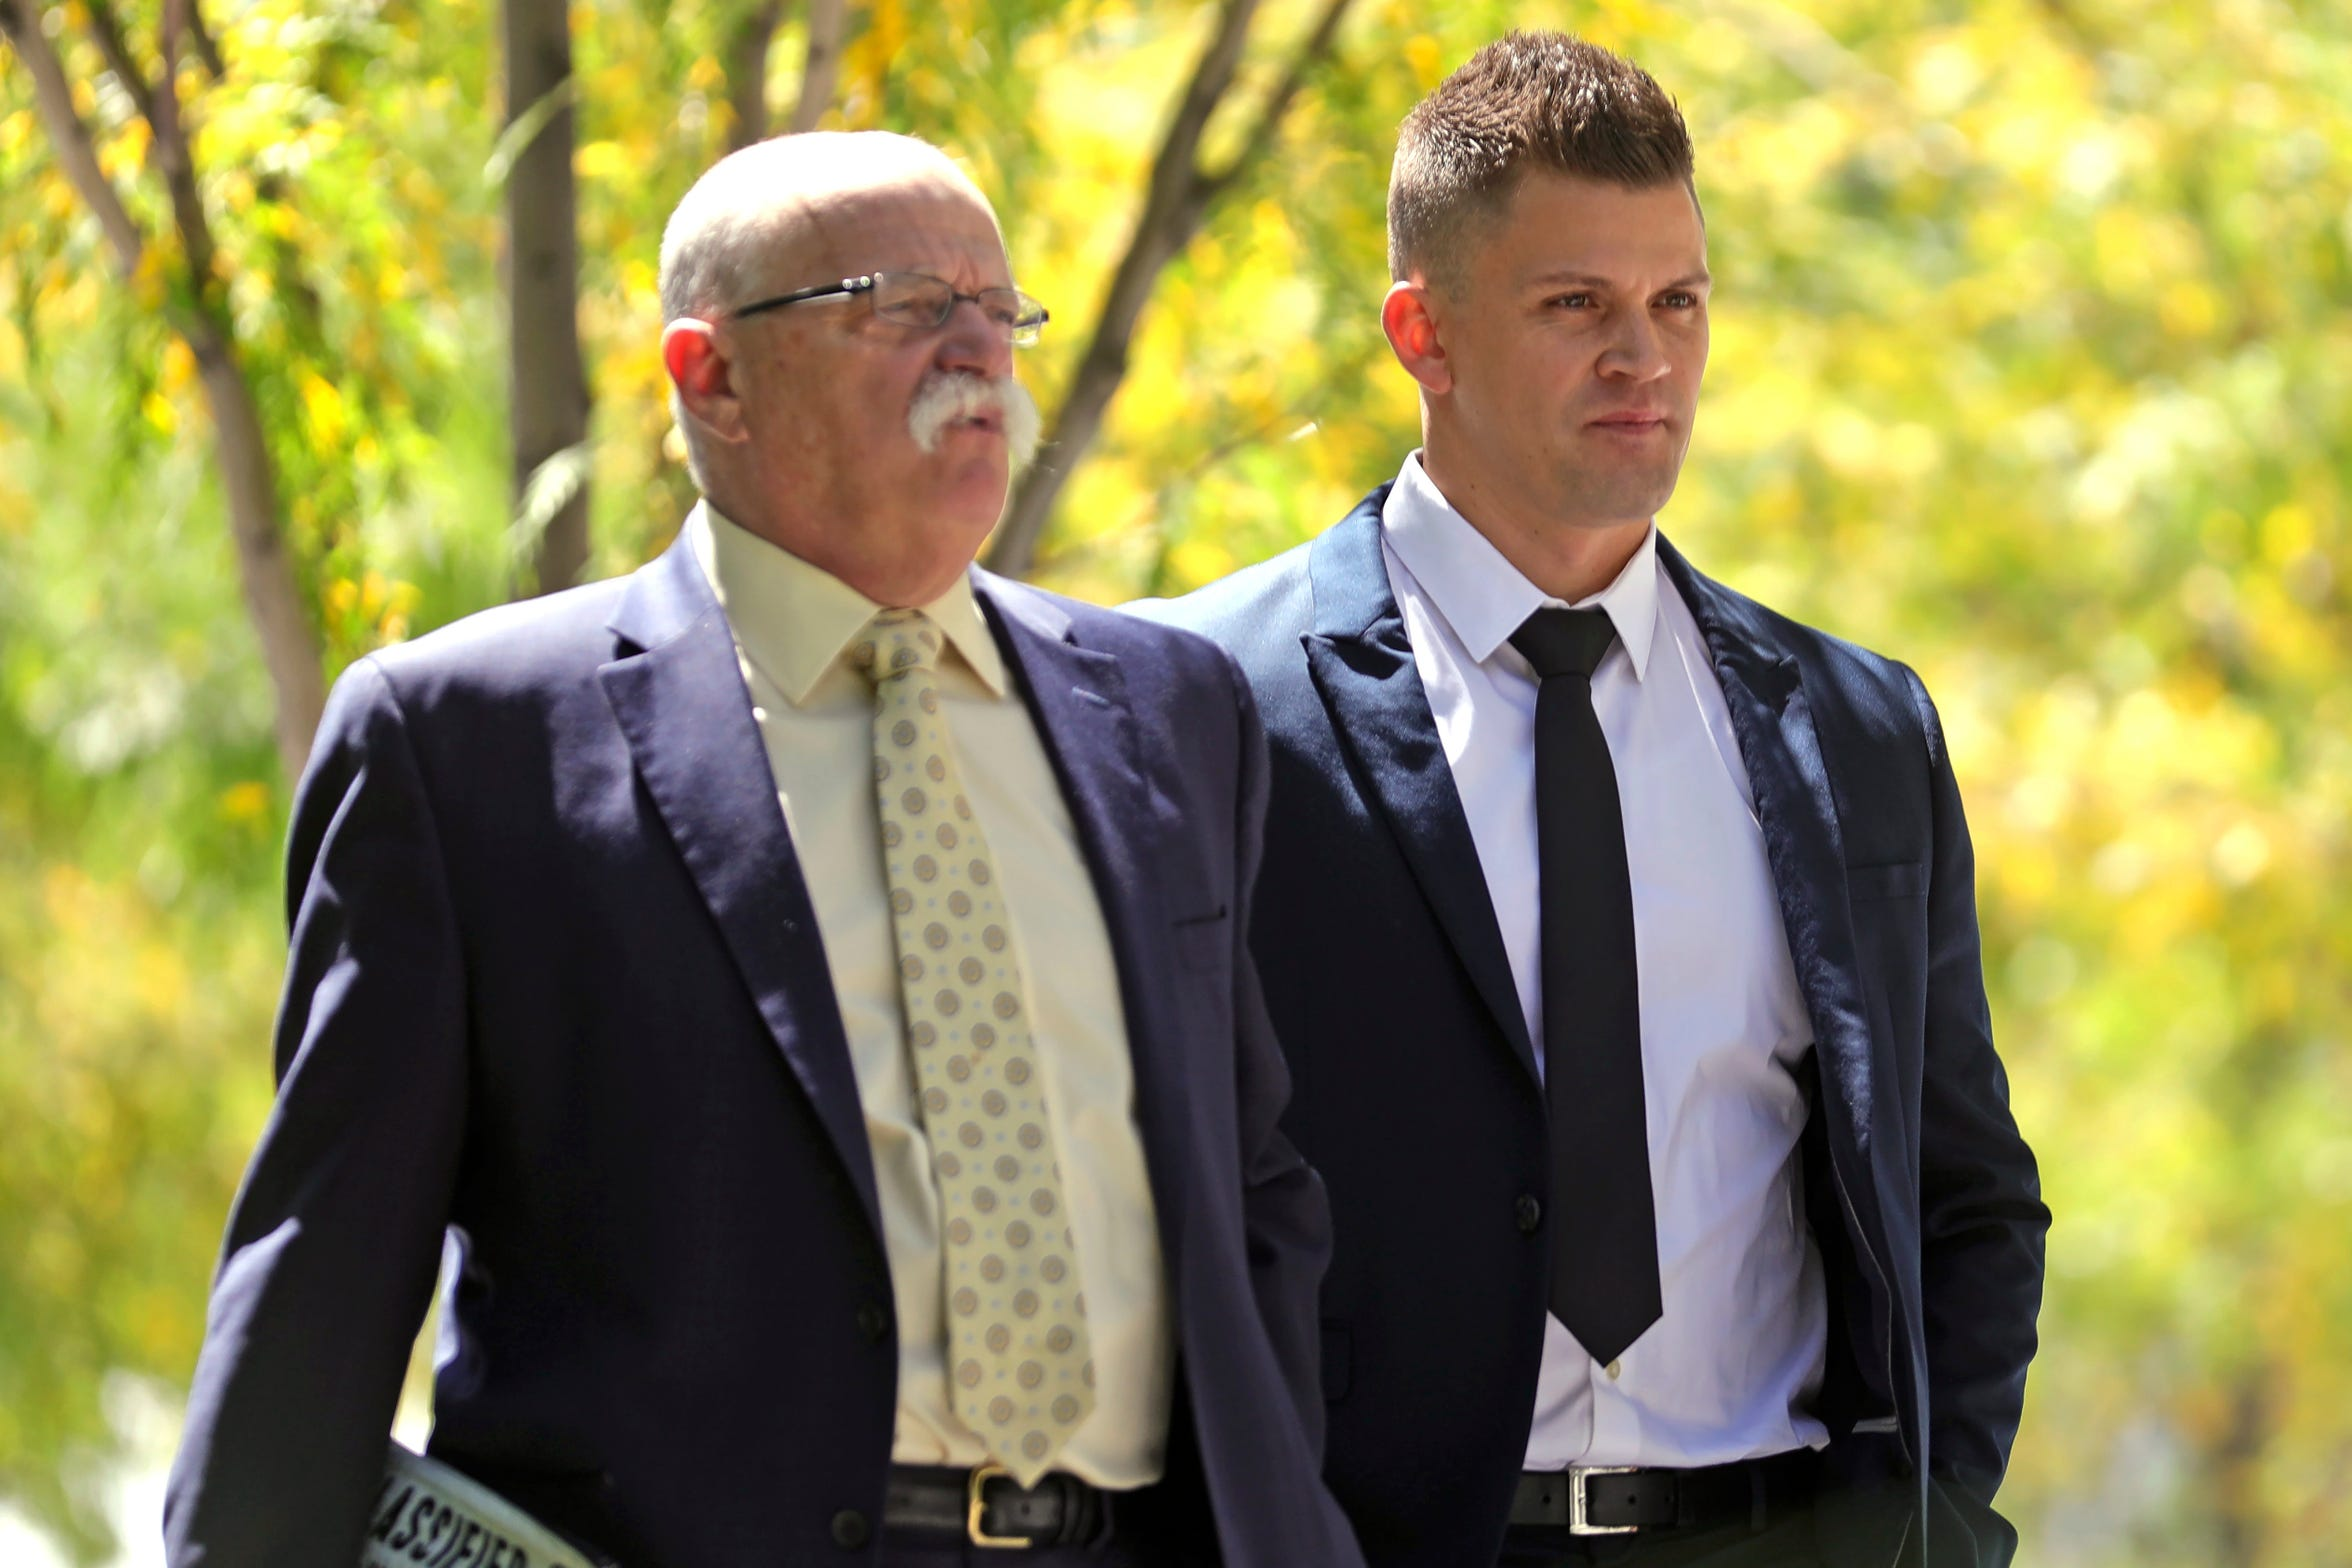 In this Aug. 23, 2019, photo, Jonathan Luke Paz, right, leaves the federal courthouse after testifying, in Salt Lake City. He has pleaded guilty to helping Aaron Shamo press potentially poisonous fentanyl-laced counterfeit prescription drug pills and agreed to testify against him.